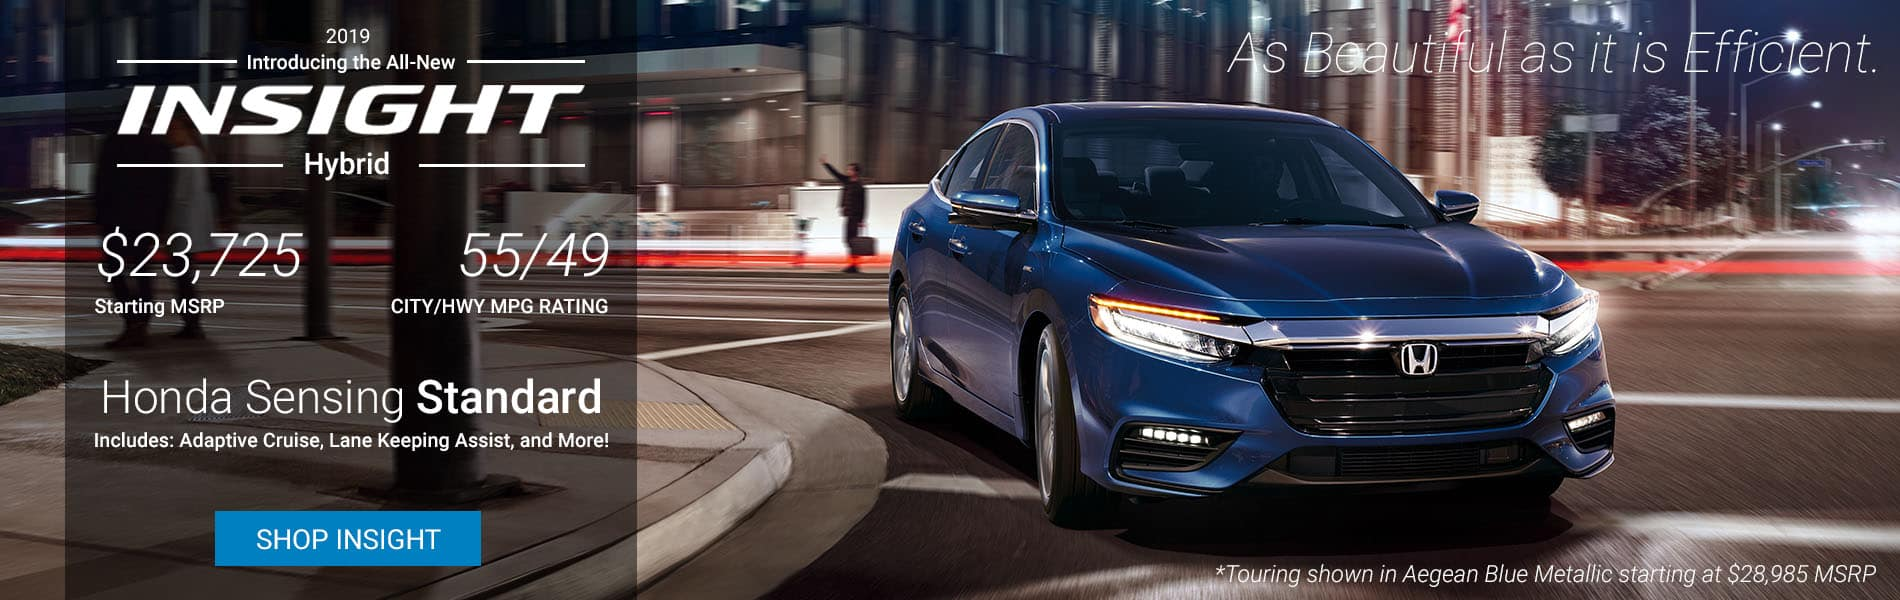 The 2019 Honda Insight Now in stock at Beaveton Honda!